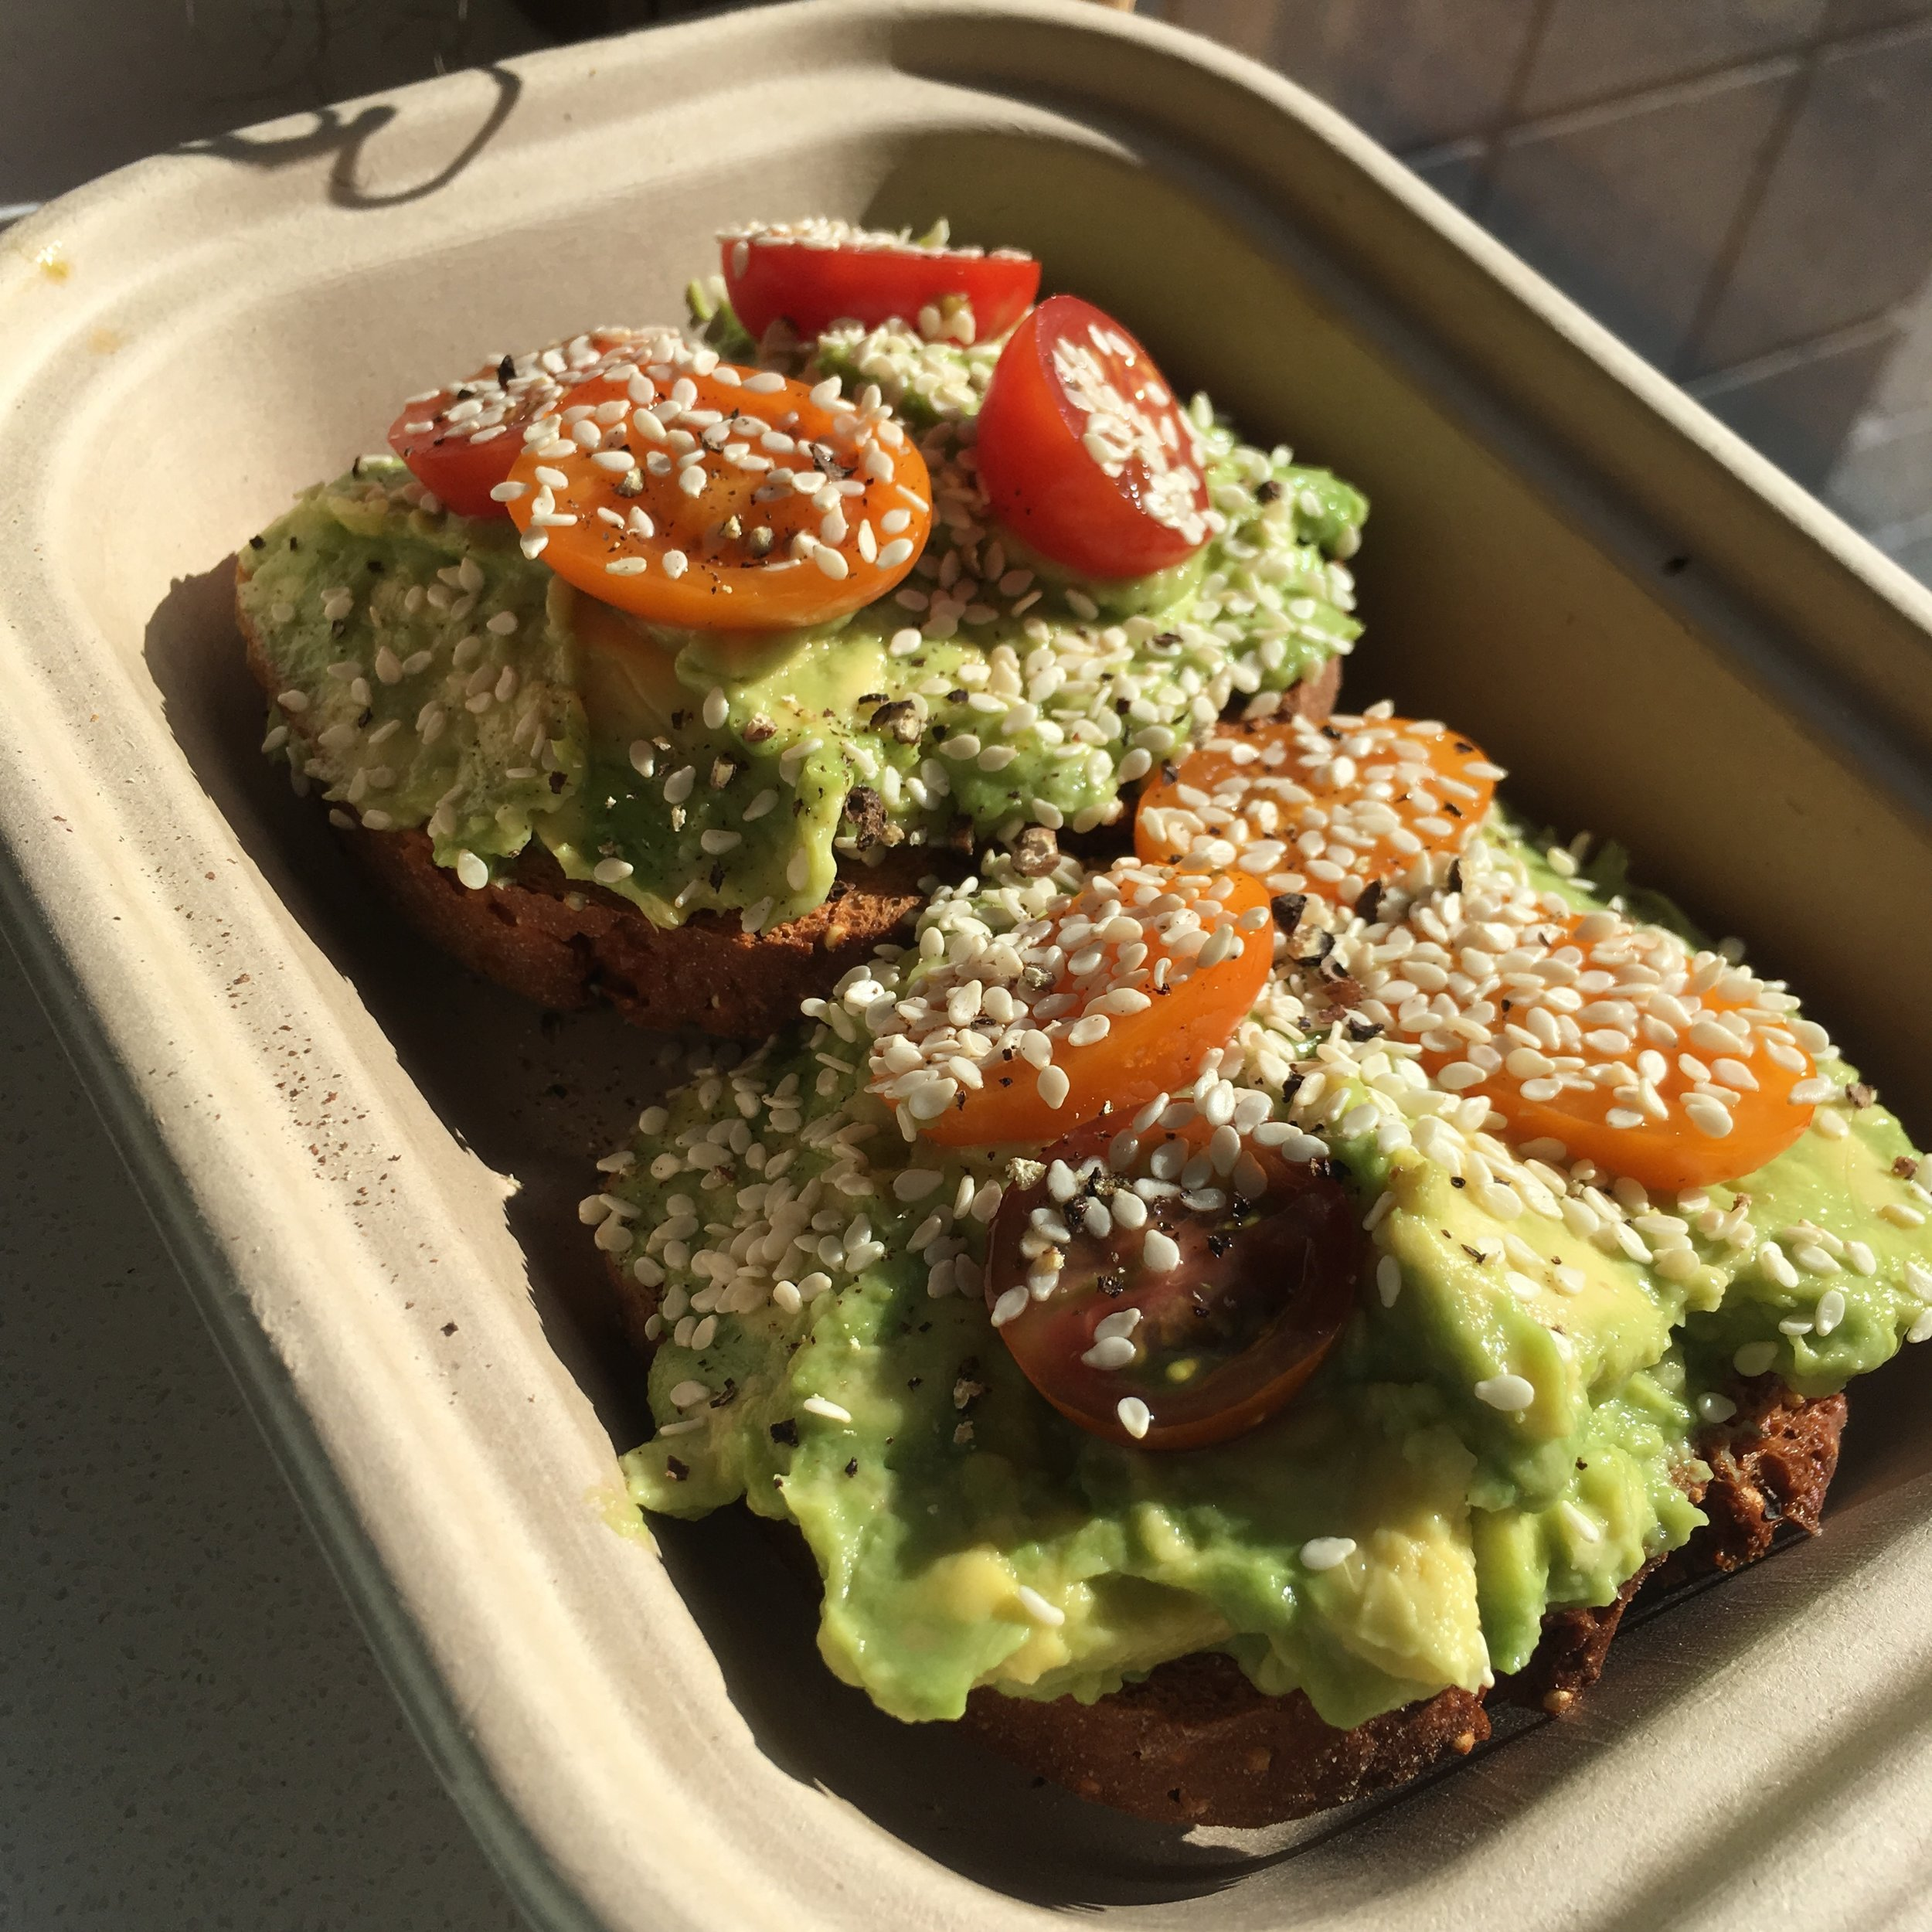 The most decadent avocado toast ever at Mother Juice in Boston. I think they used an entire avocado.